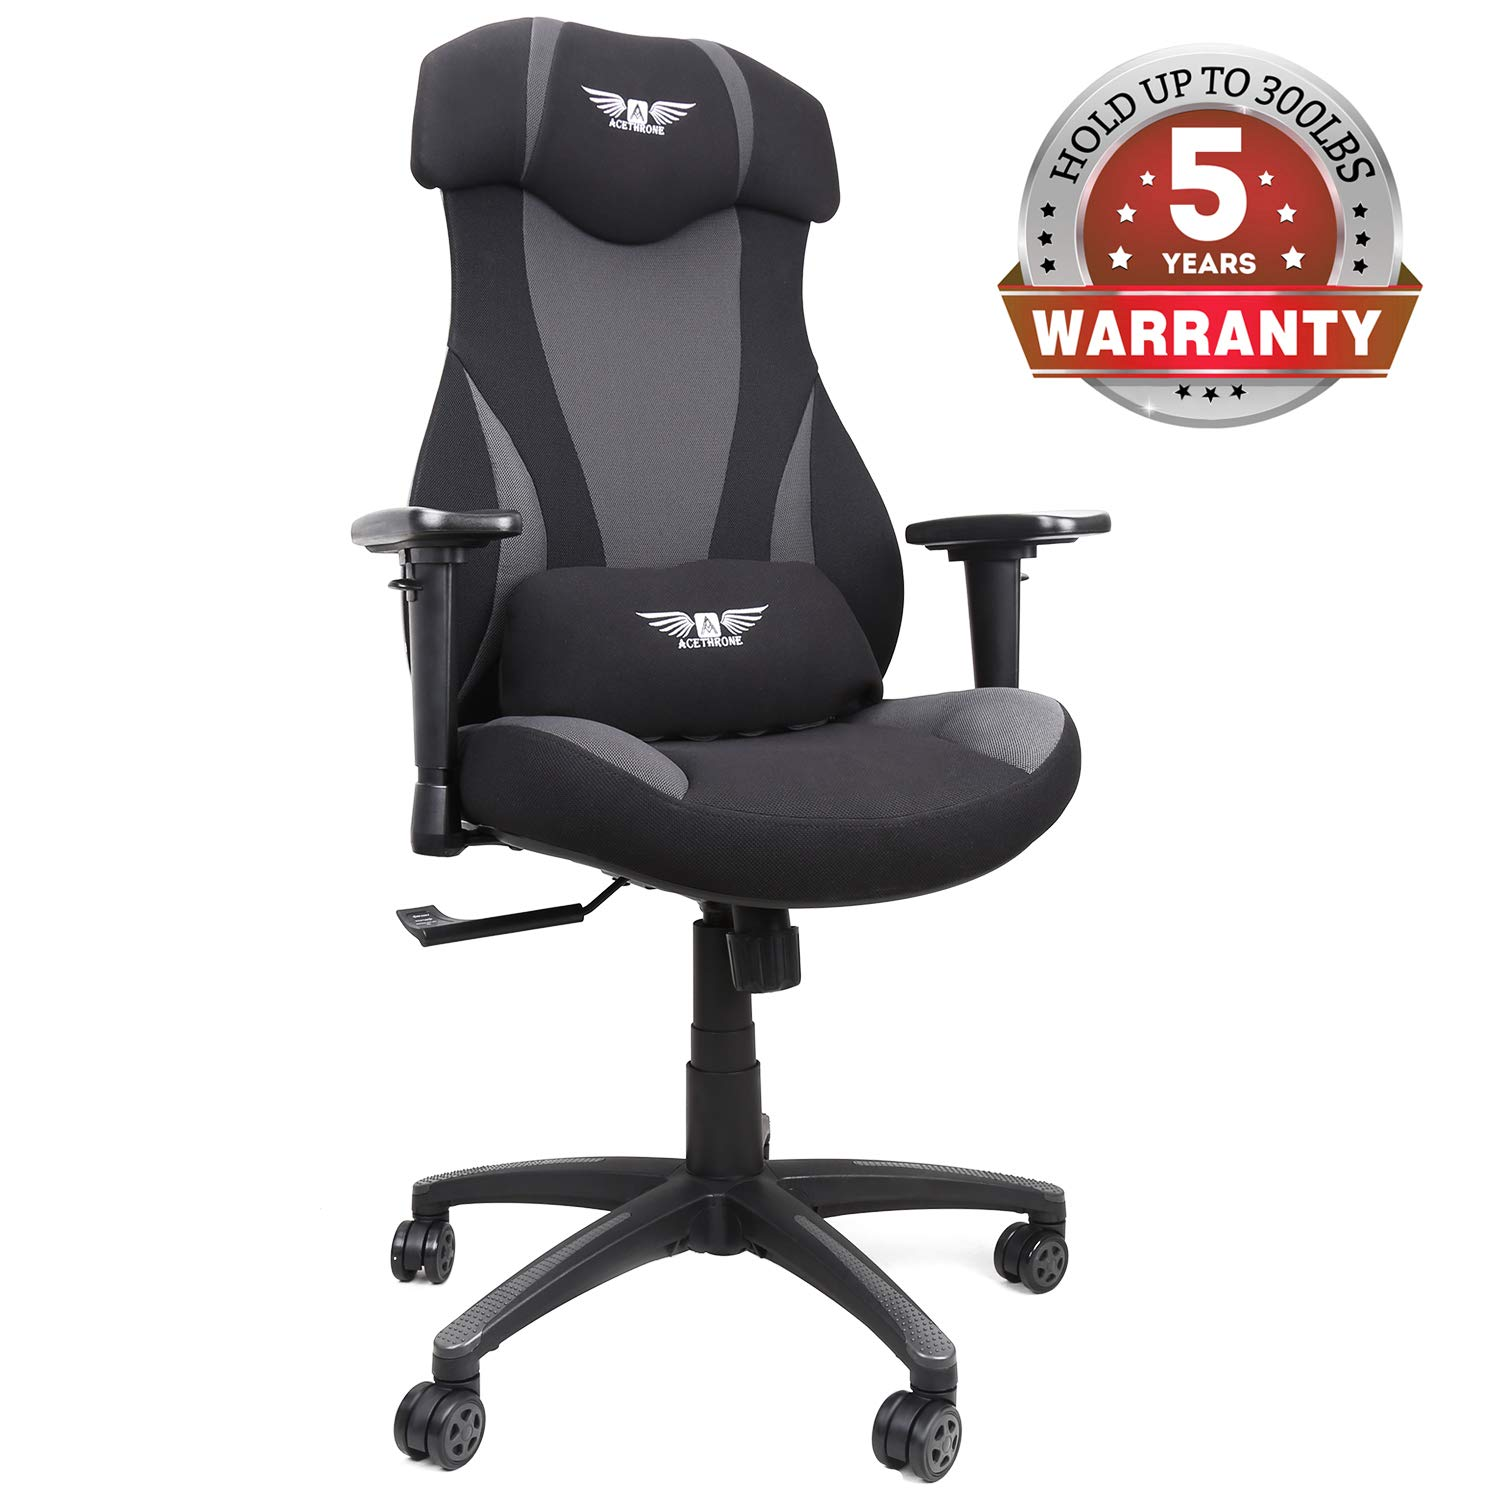 Mesh Gaming Chairs, Racing Style Office Chair, Ergonomic Computer Desk Chairs with Lift Headrest and Armrests, Flexible Adjustable Height and Reclining Device